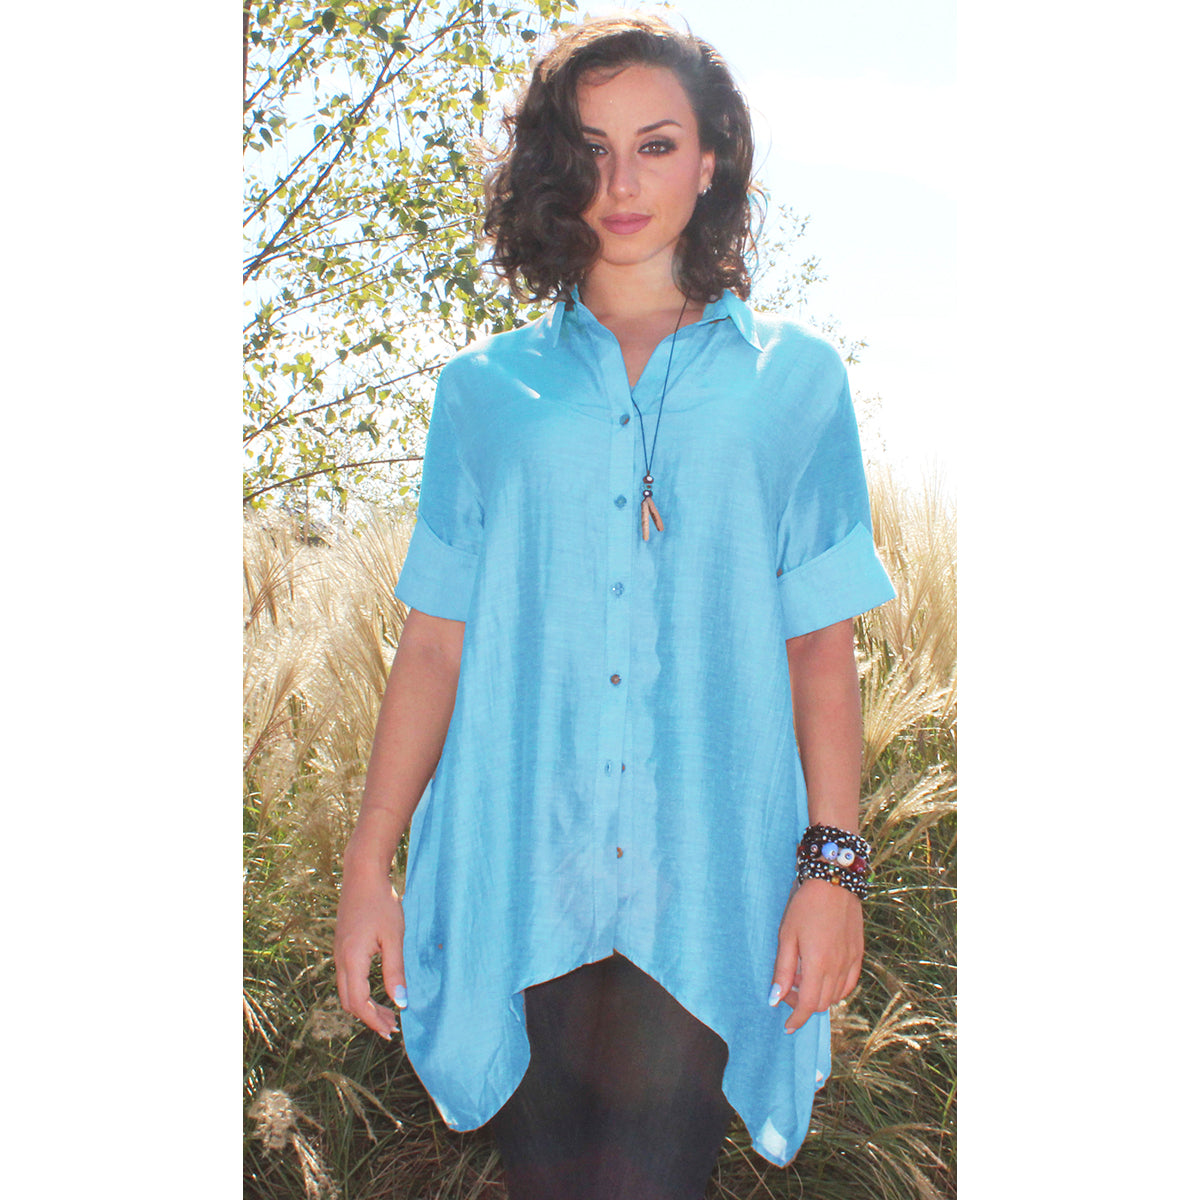 women's silk button shirt summer